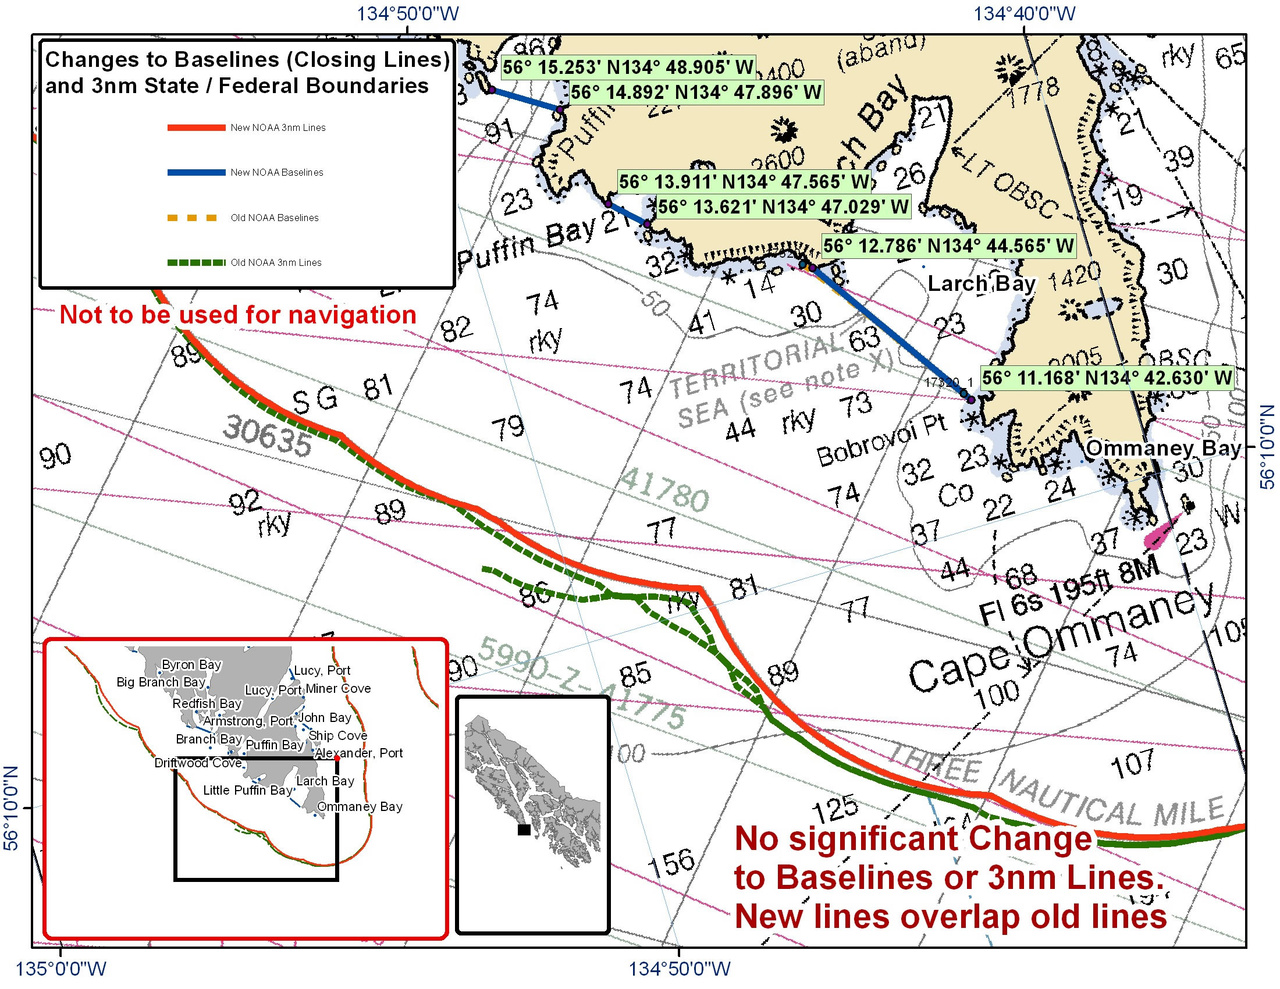 Chart for Larch Bay and the Surrounding Area